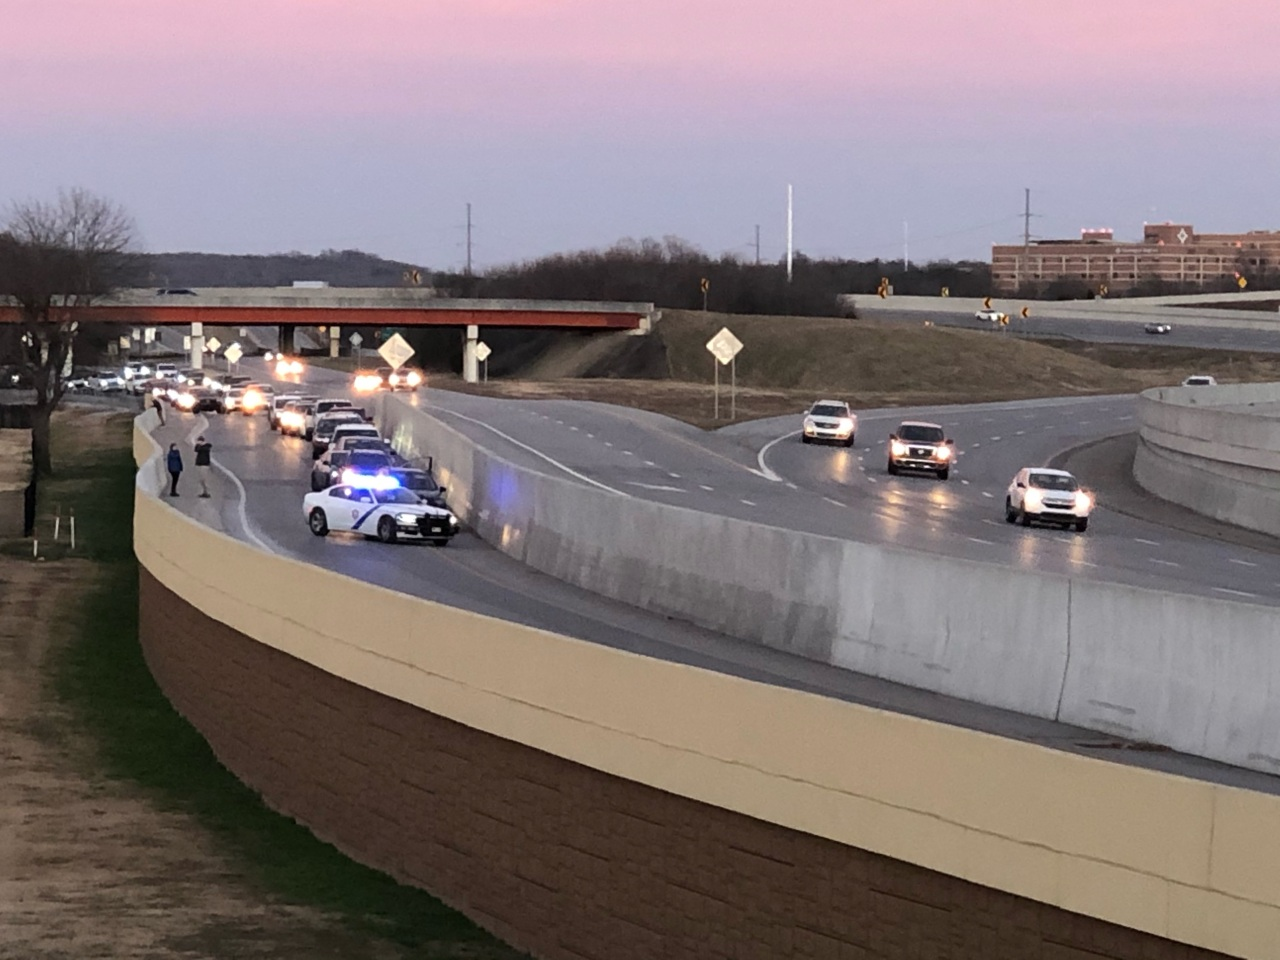 Shooting on I-49 in Fayetteville, Arkansas State Police officials say